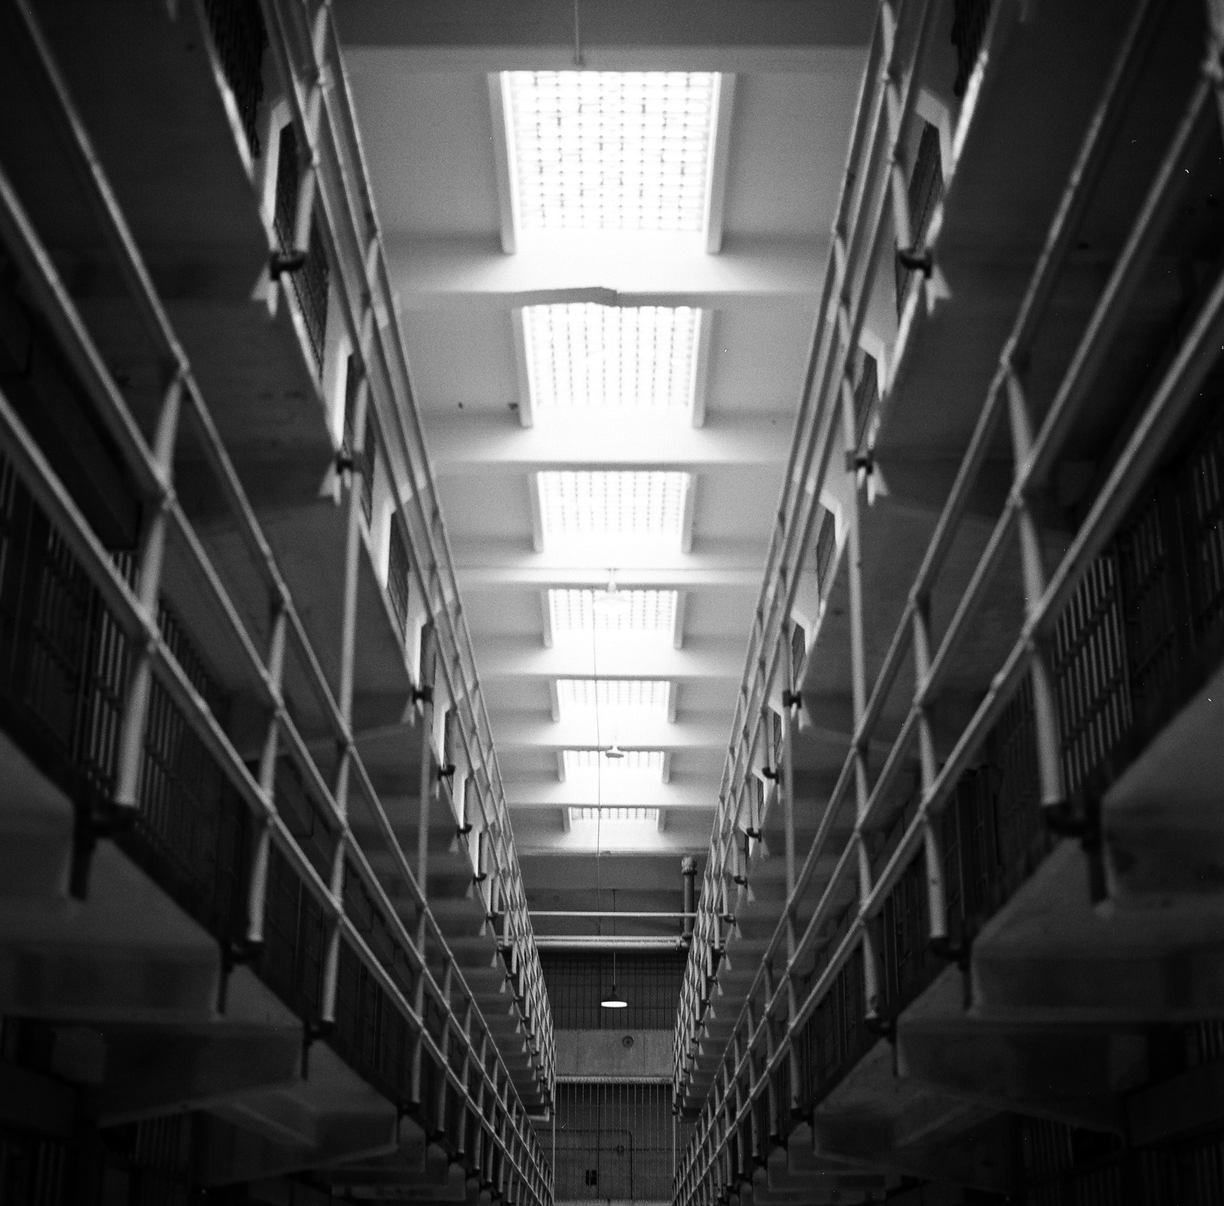 Looking Up_Skylight and Prison Cells_Second Floor_Alcatraz_web.jpg